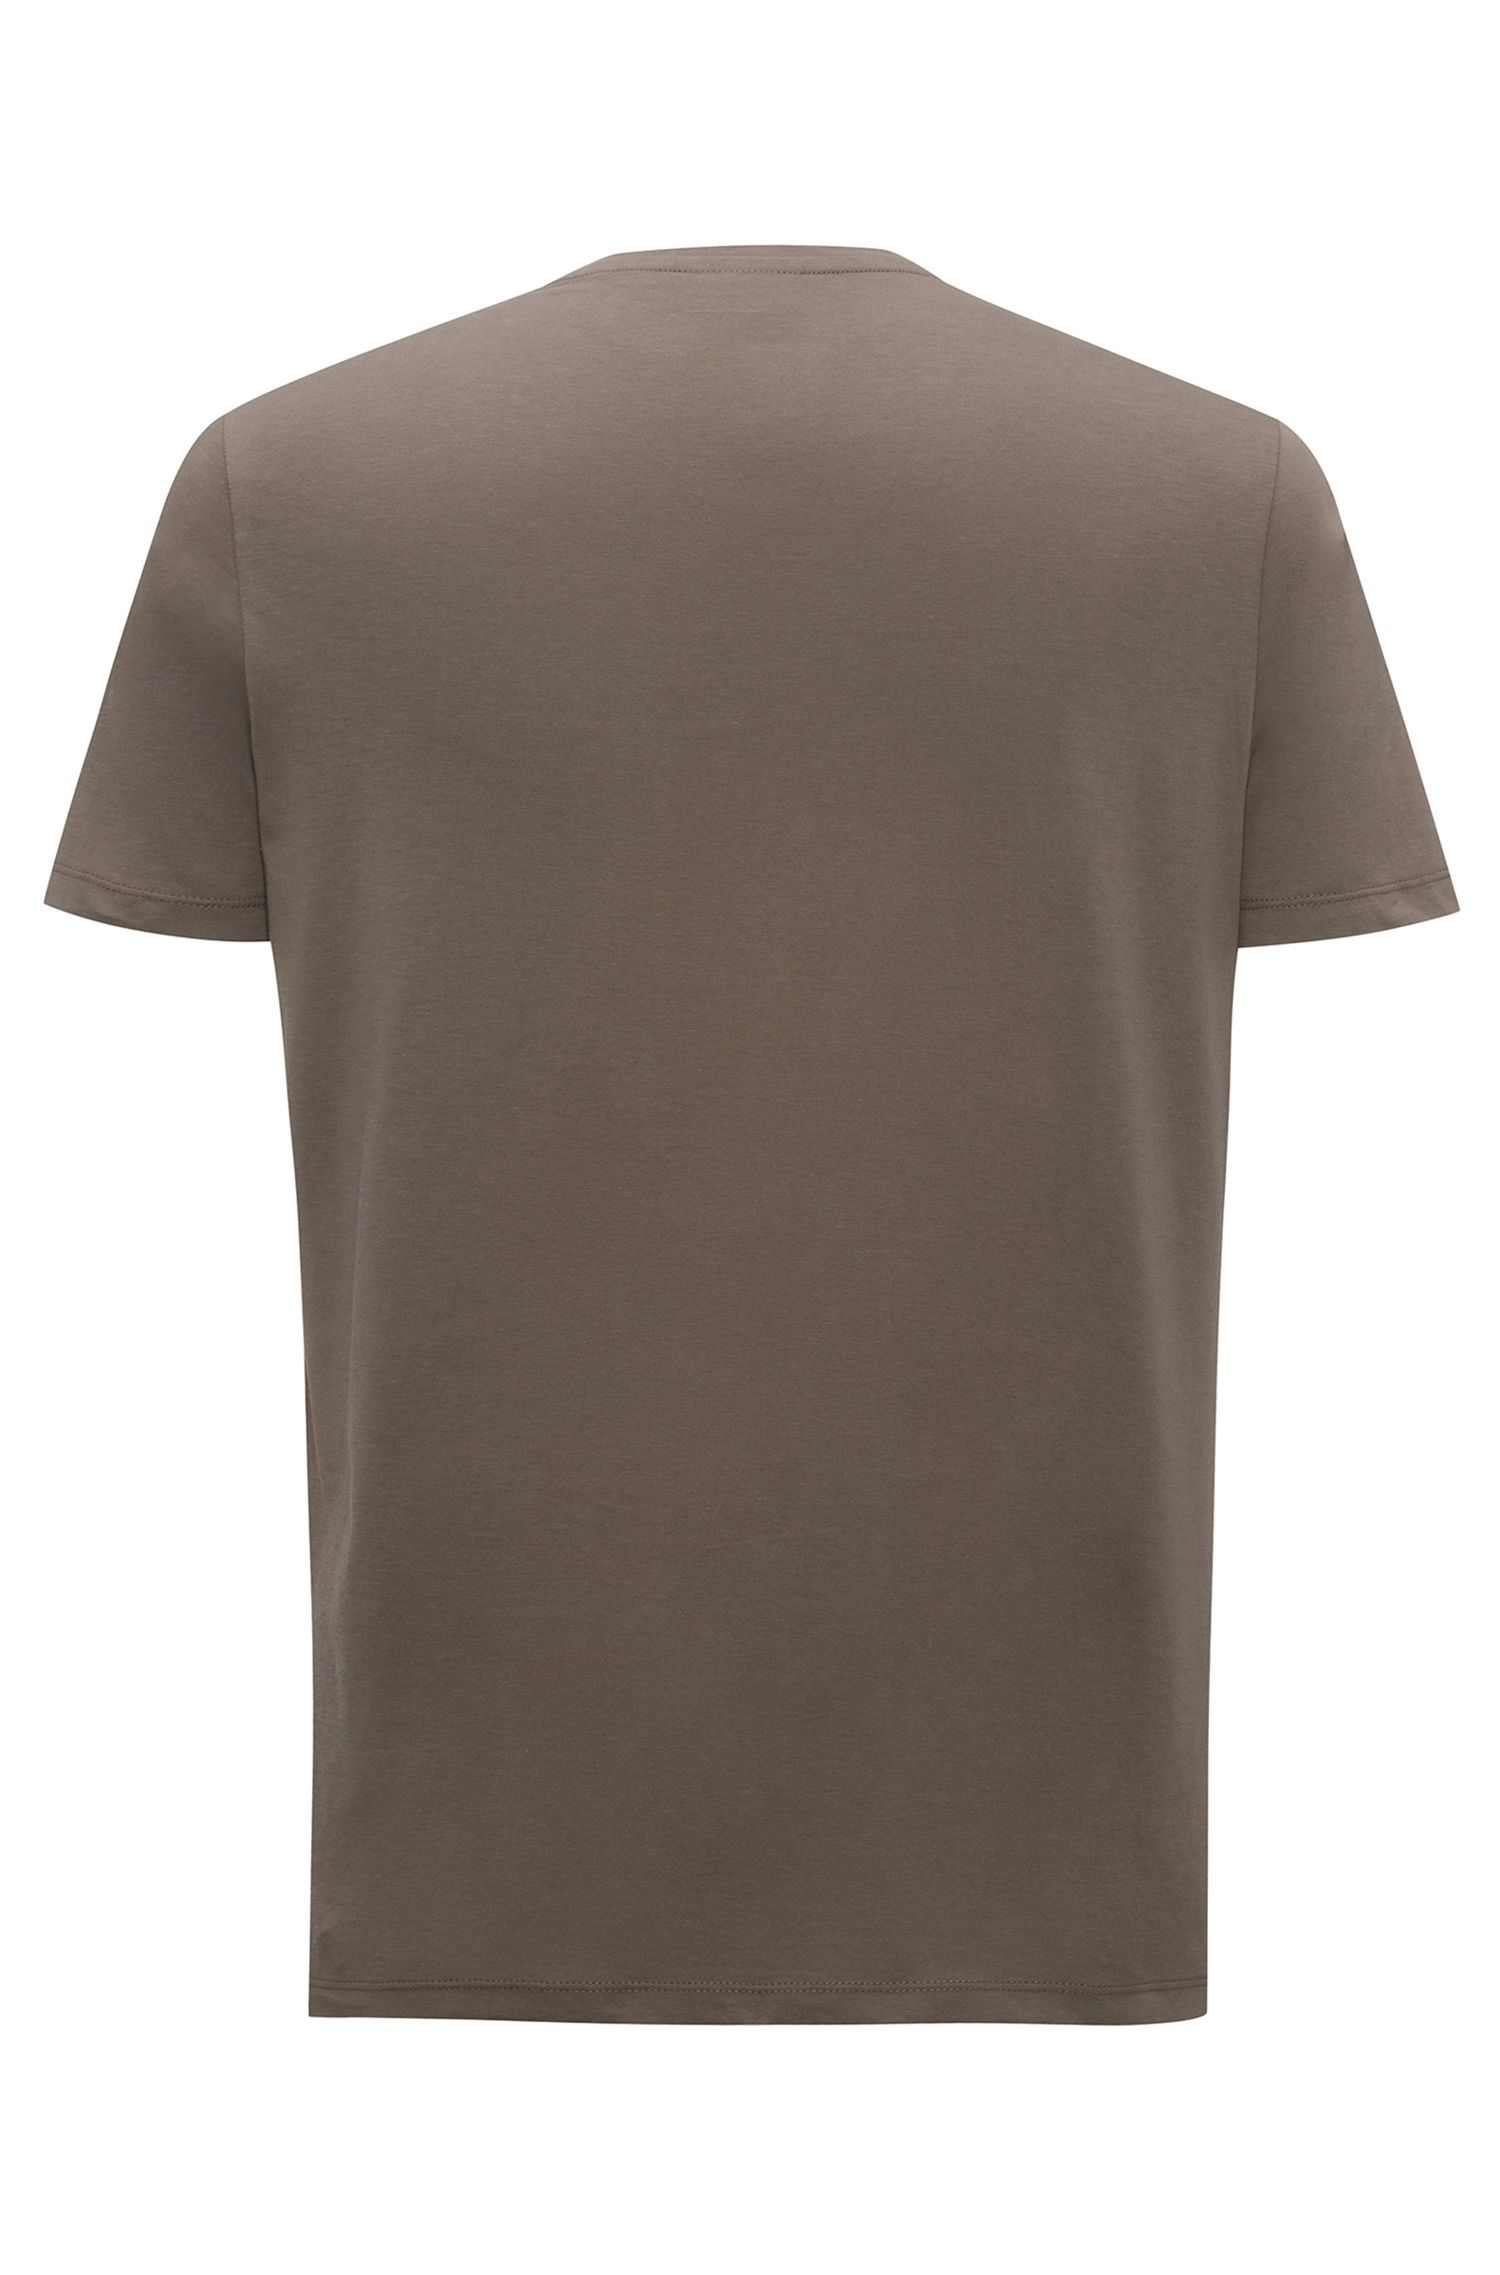 Relaxed-fit logo T-shirt in cotton jersey